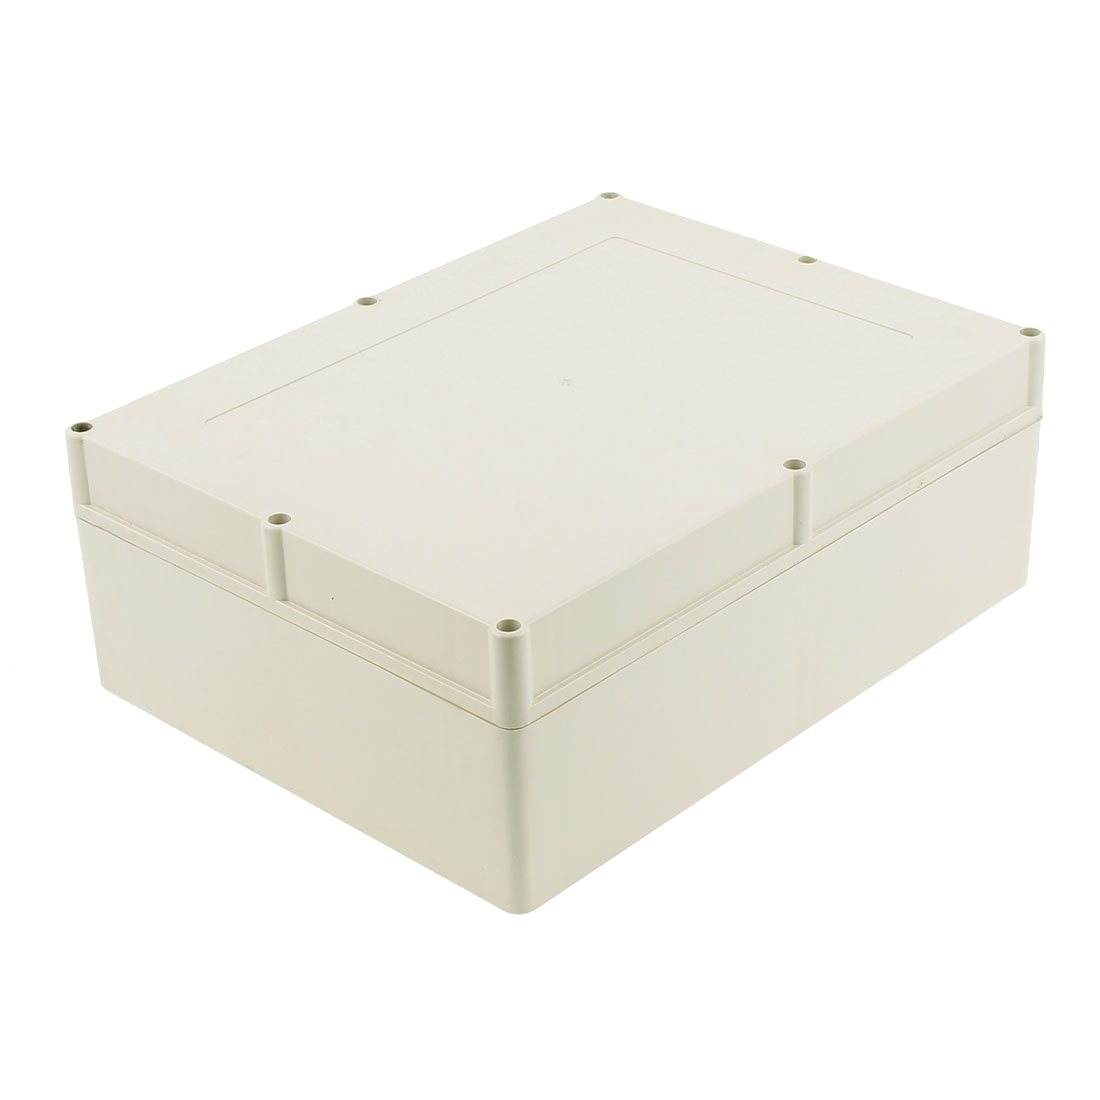 300 x 230 x 110mm Dustproof IP65 Junction Box Terminal Connecting Box Enclosure